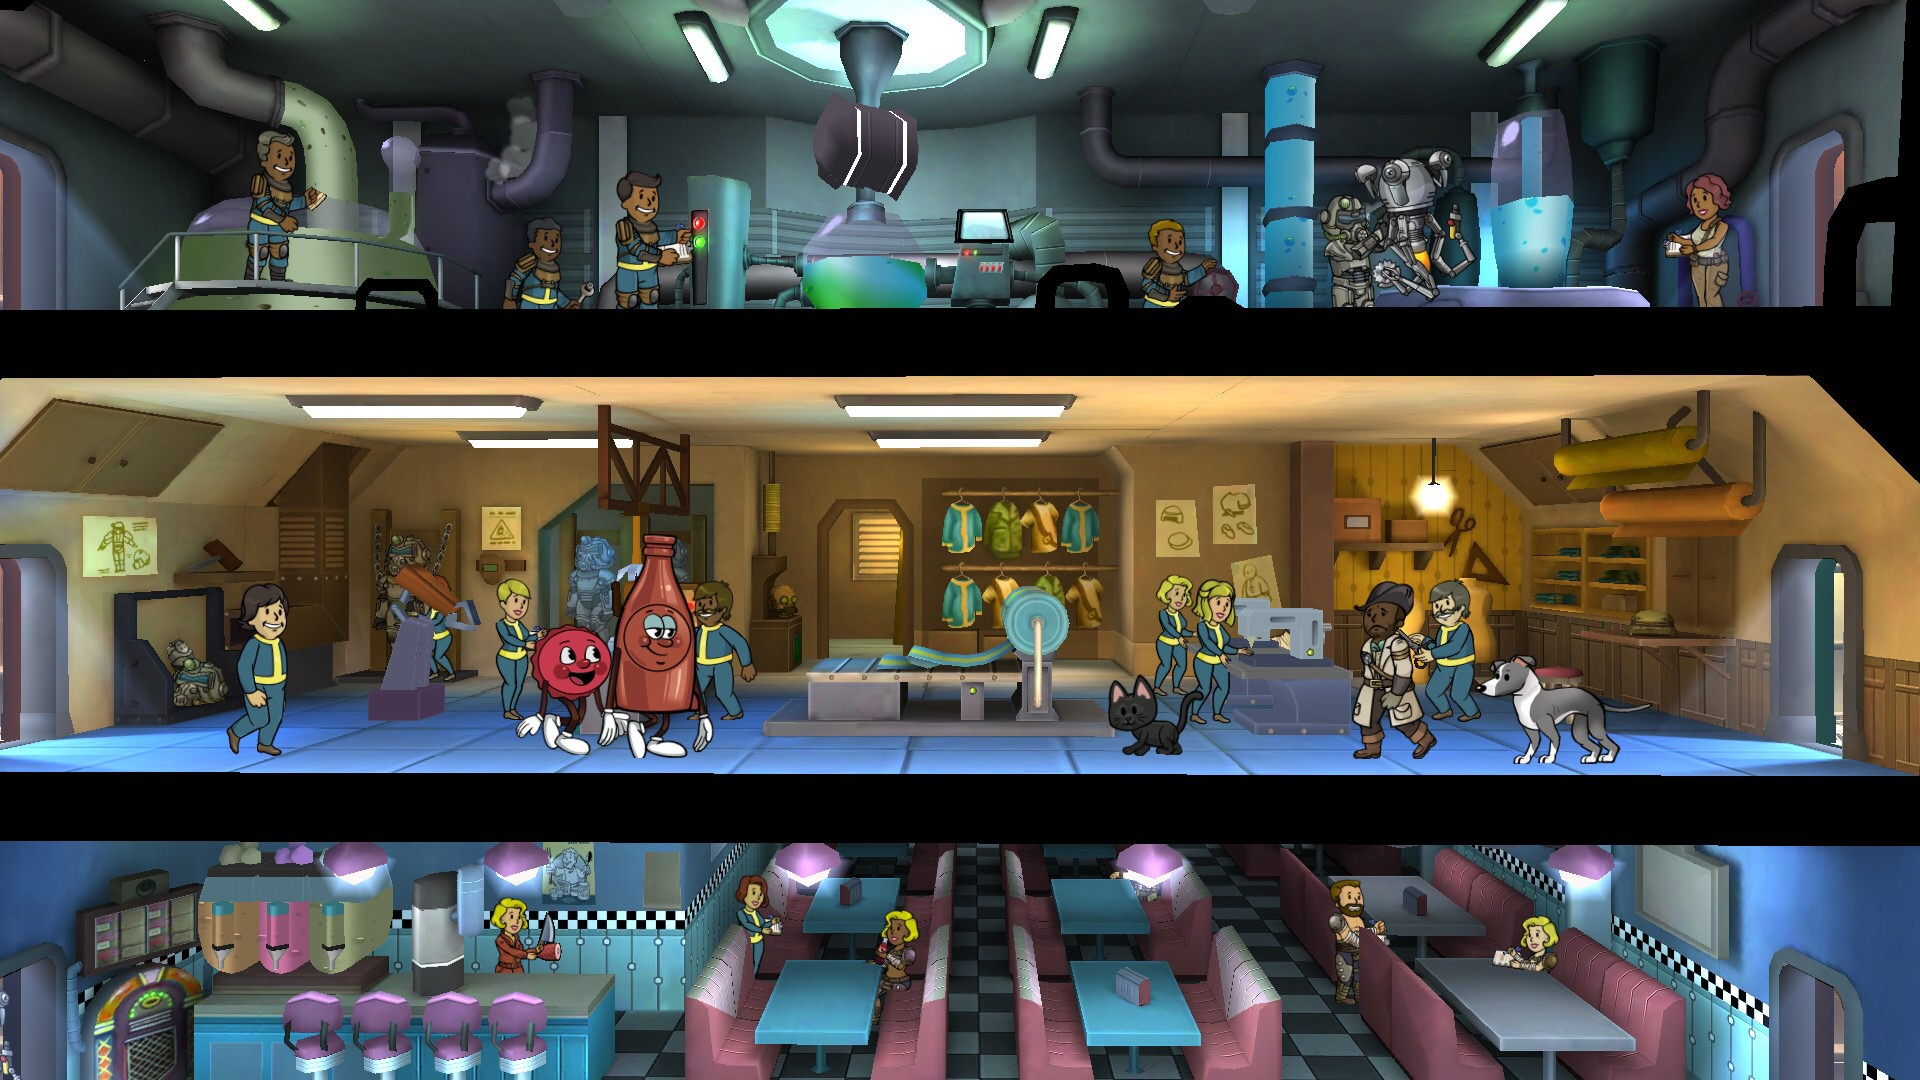 fallout-shelter-gets-nuka-world-mascots-in-new-update-147213129129